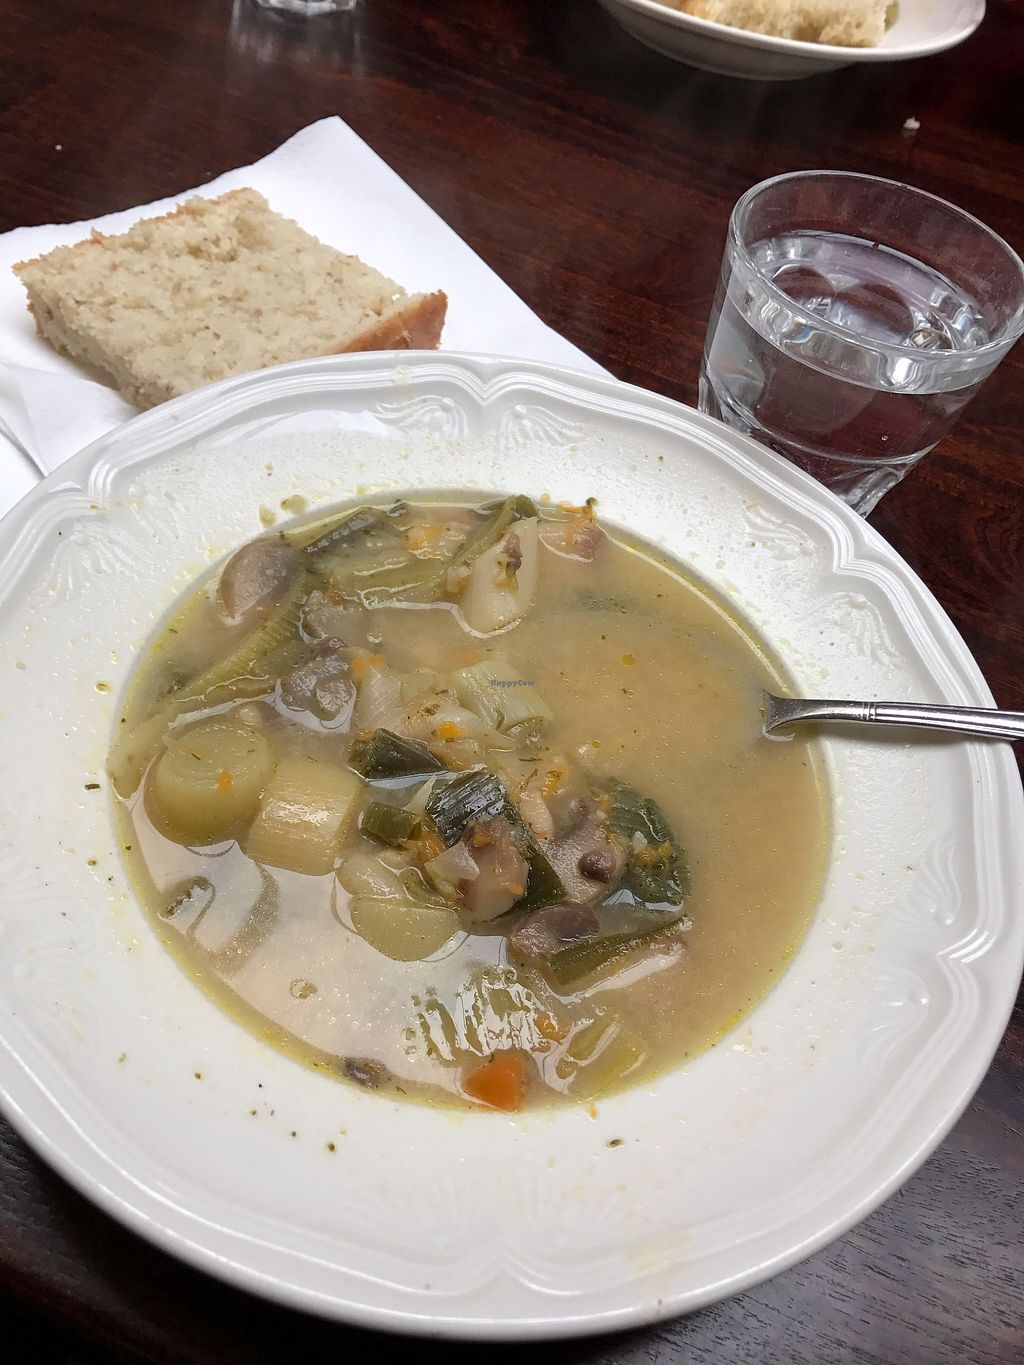 "Photo of The Settlement Center Restaurant  by <a href=""/members/profile/Banana%20Buzzbomb"">Banana Buzzbomb</a> <br/>Most delicious soup we've ever had - It's vegan! <br/> September 29, 2017  - <a href='/contact/abuse/image/101905/309707'>Report</a>"